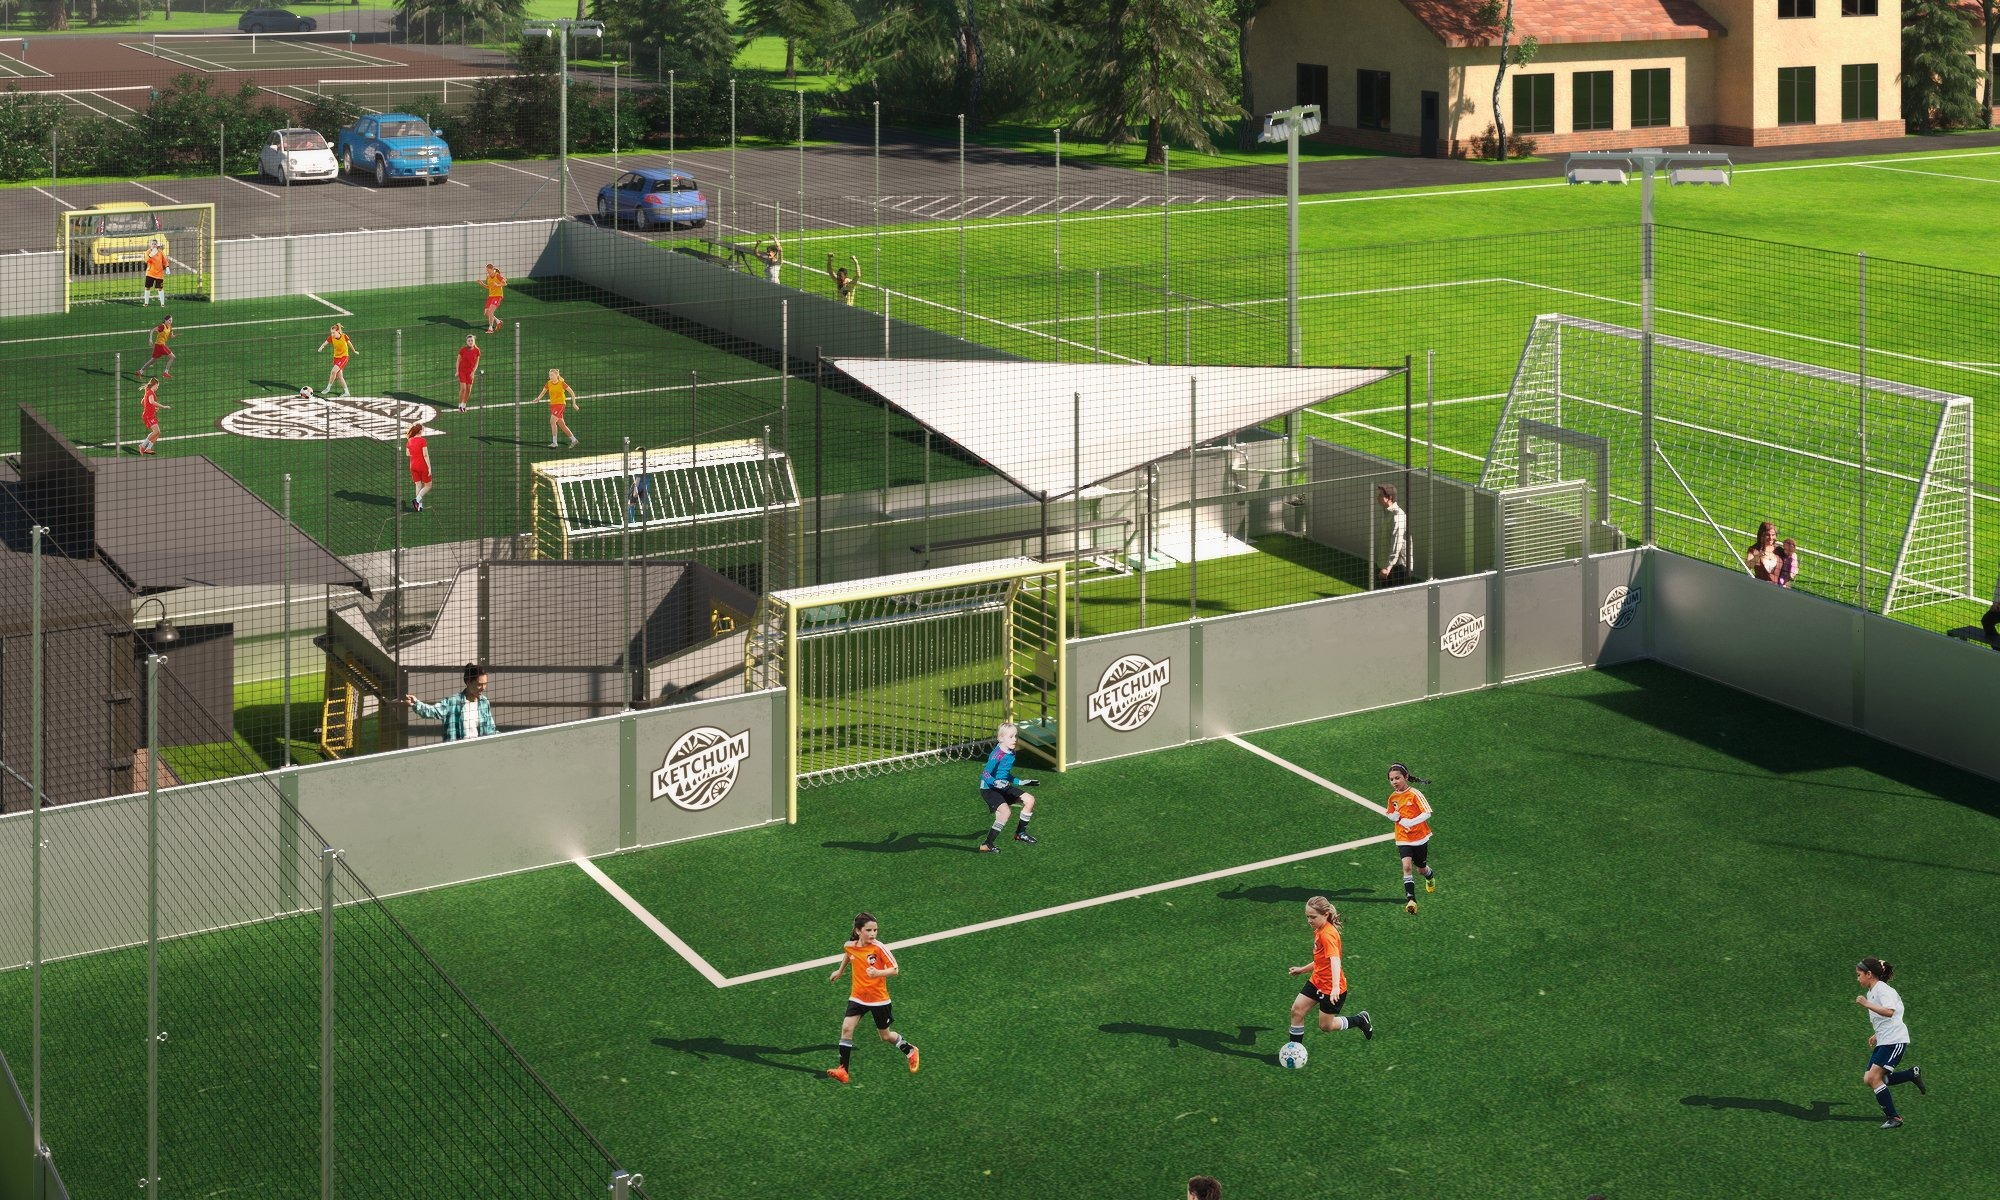 Artificial Turf: Intro to the Beautiful Soccer Fields Available